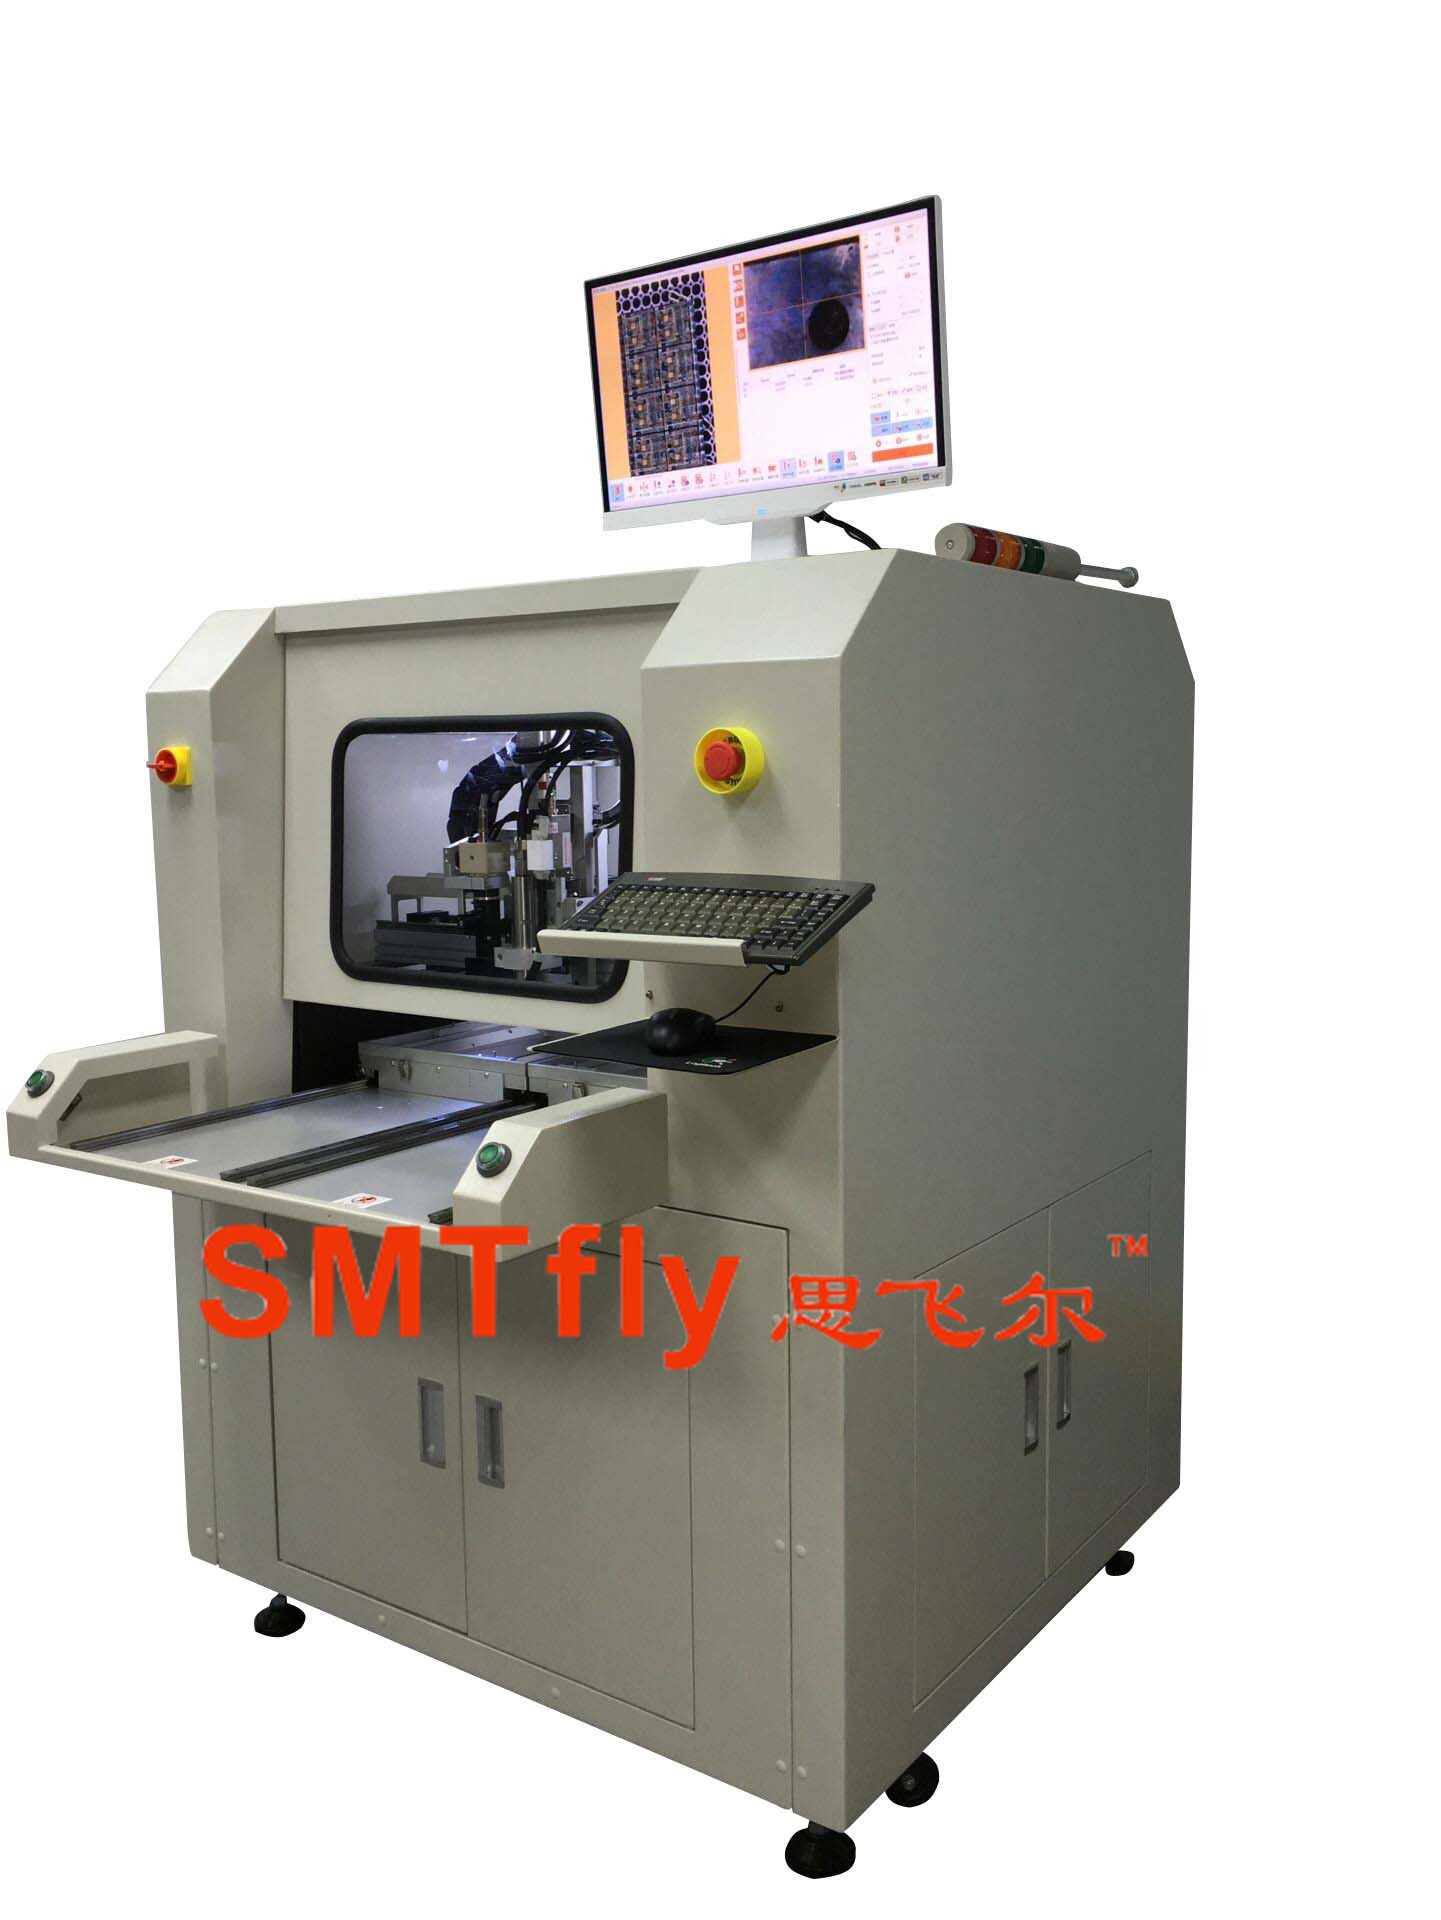 PCB drilling equipment, SMTfly-F02